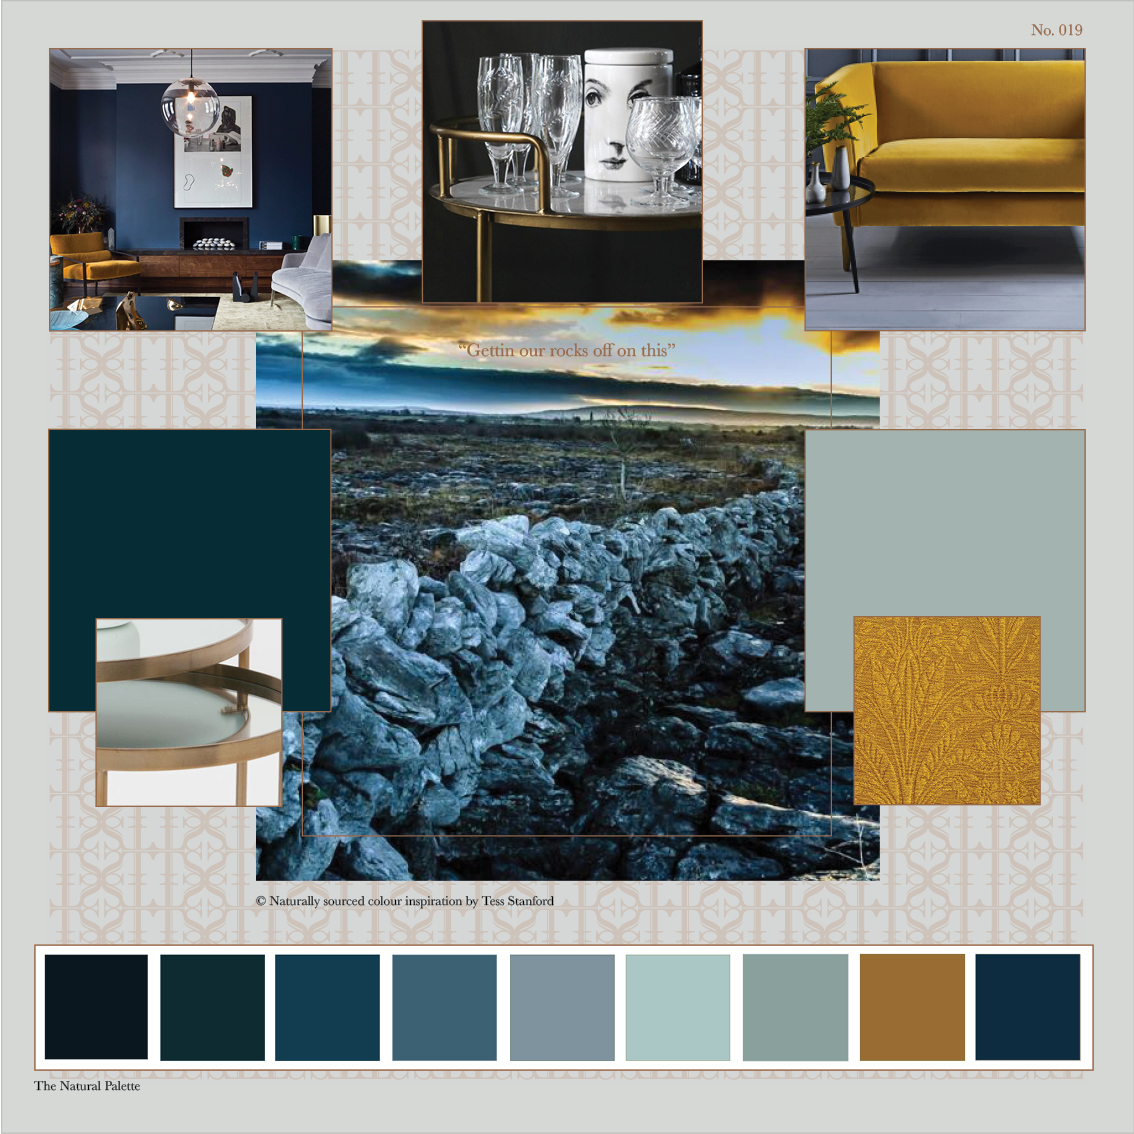 86 interior design blog colour tess stanford for Interior design inspiration